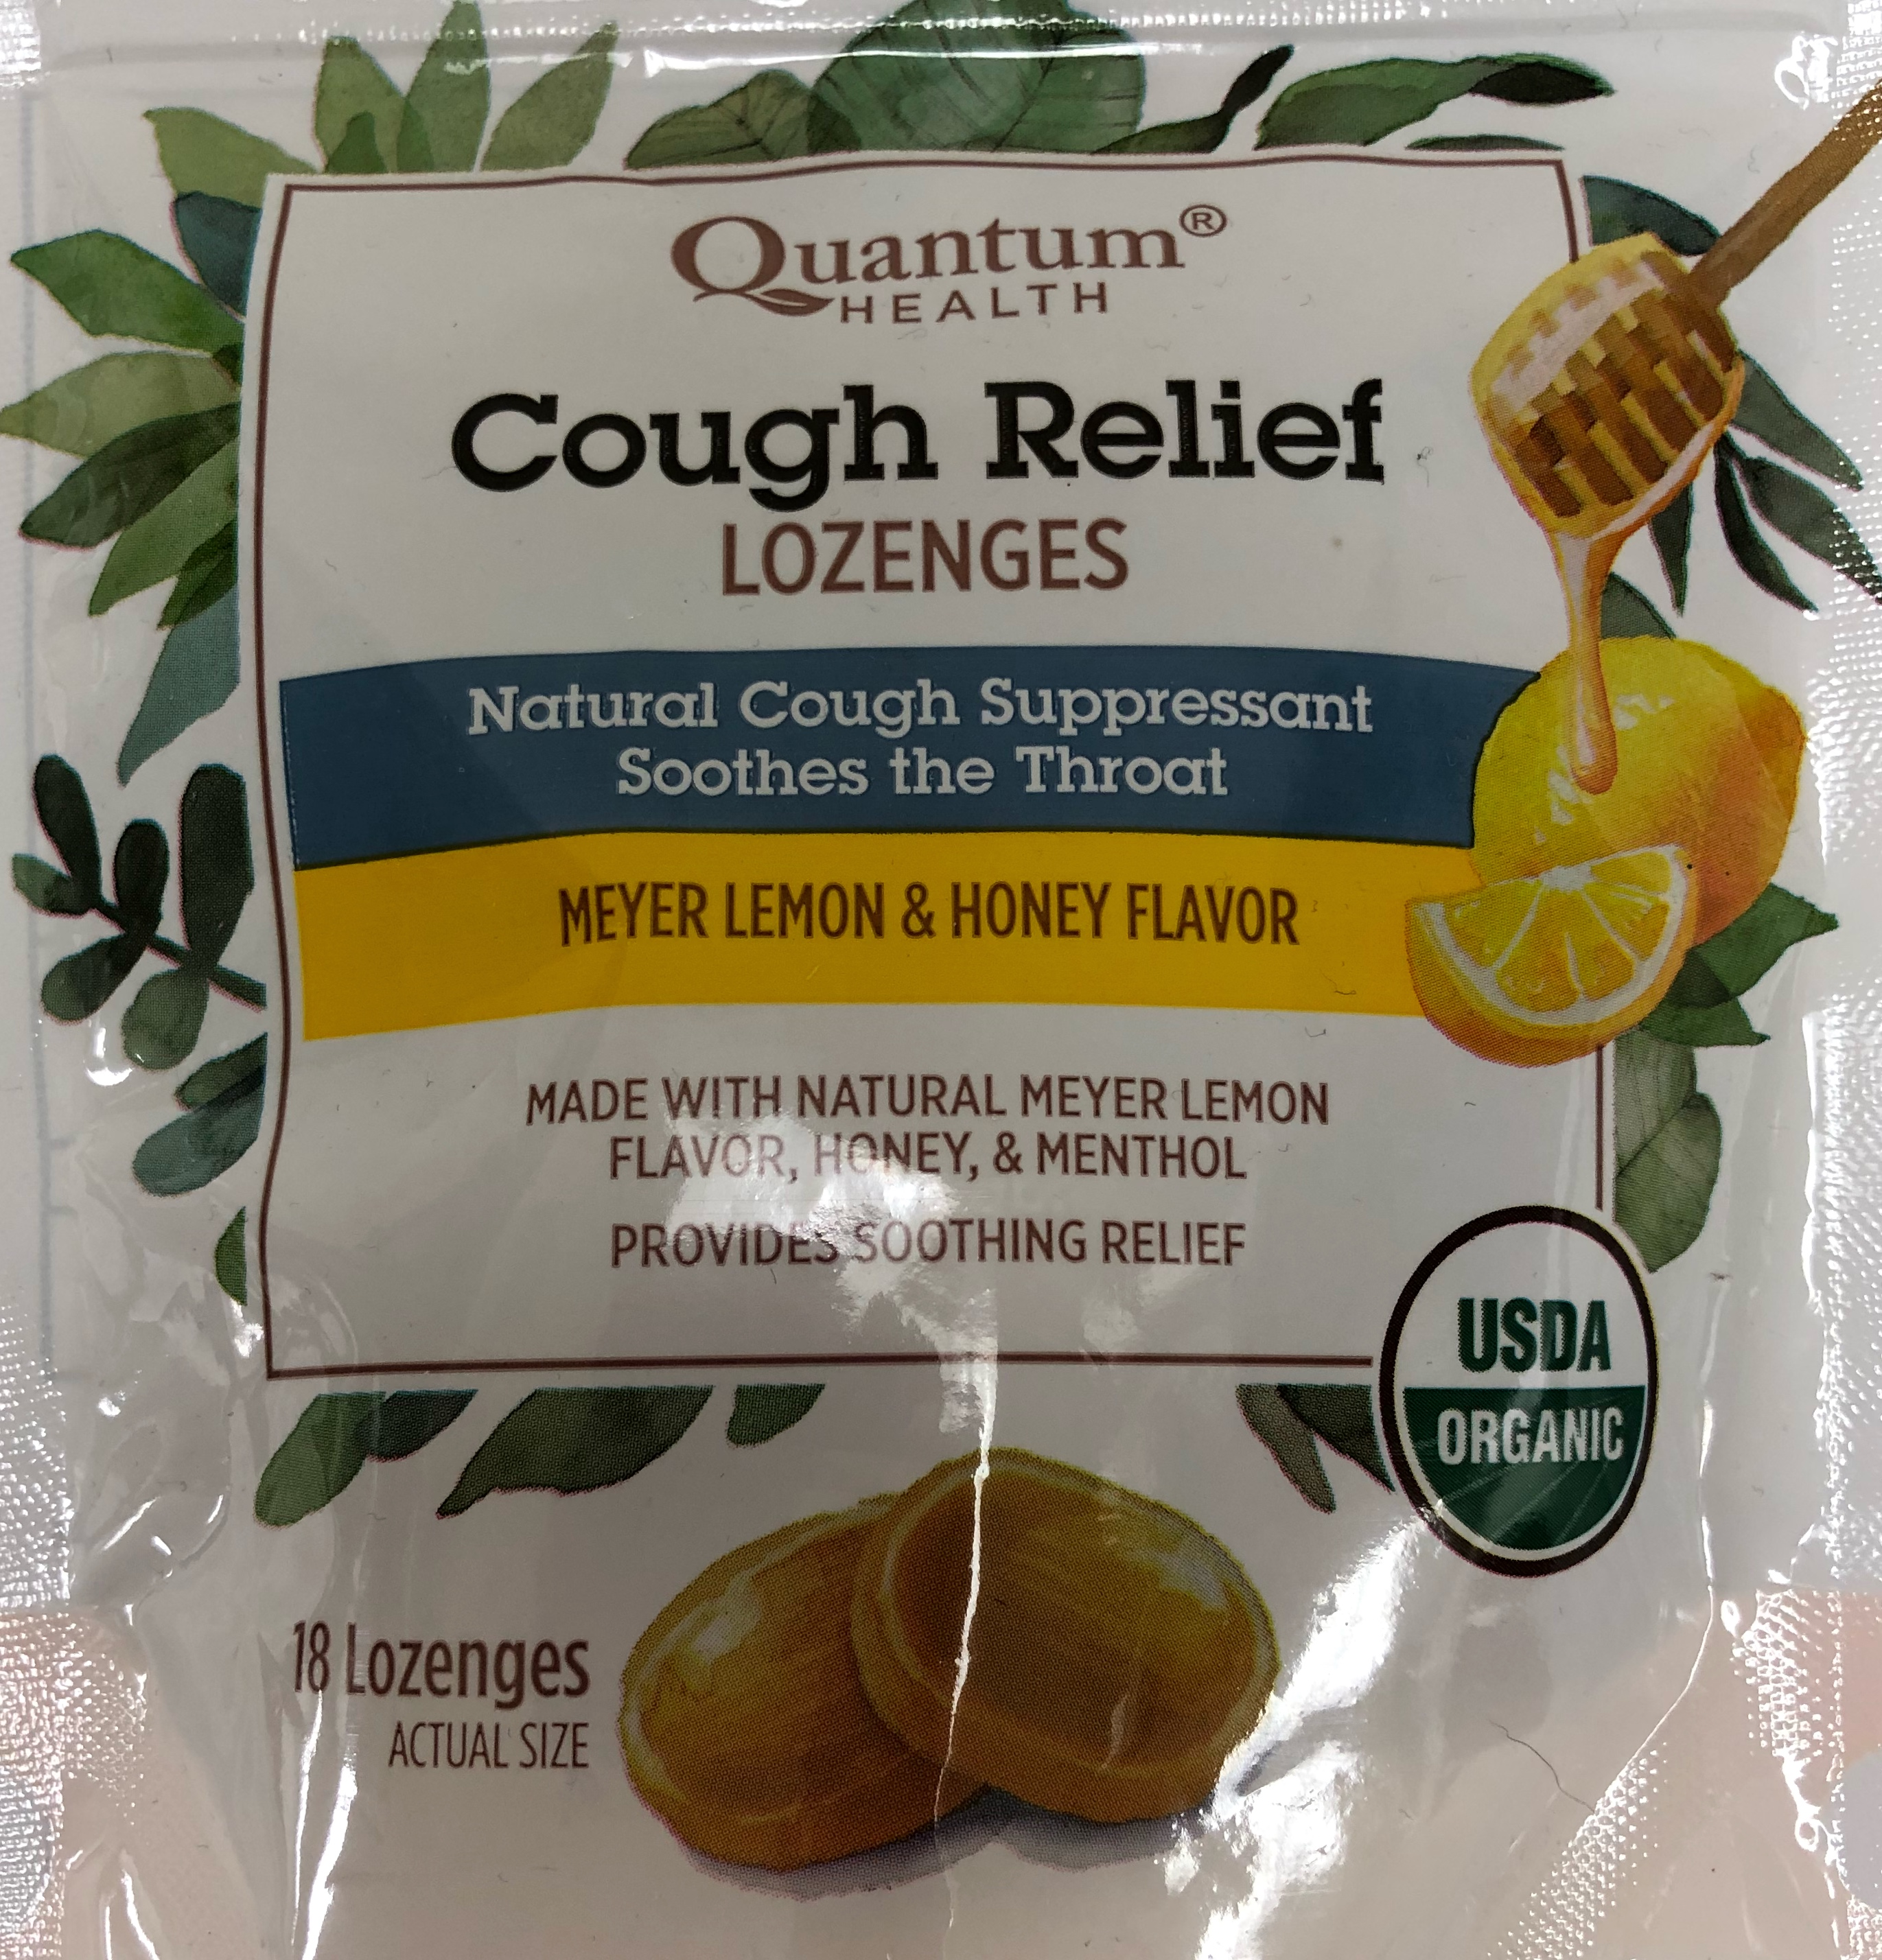 Quantum Health is the only organic certified cough drop on the market